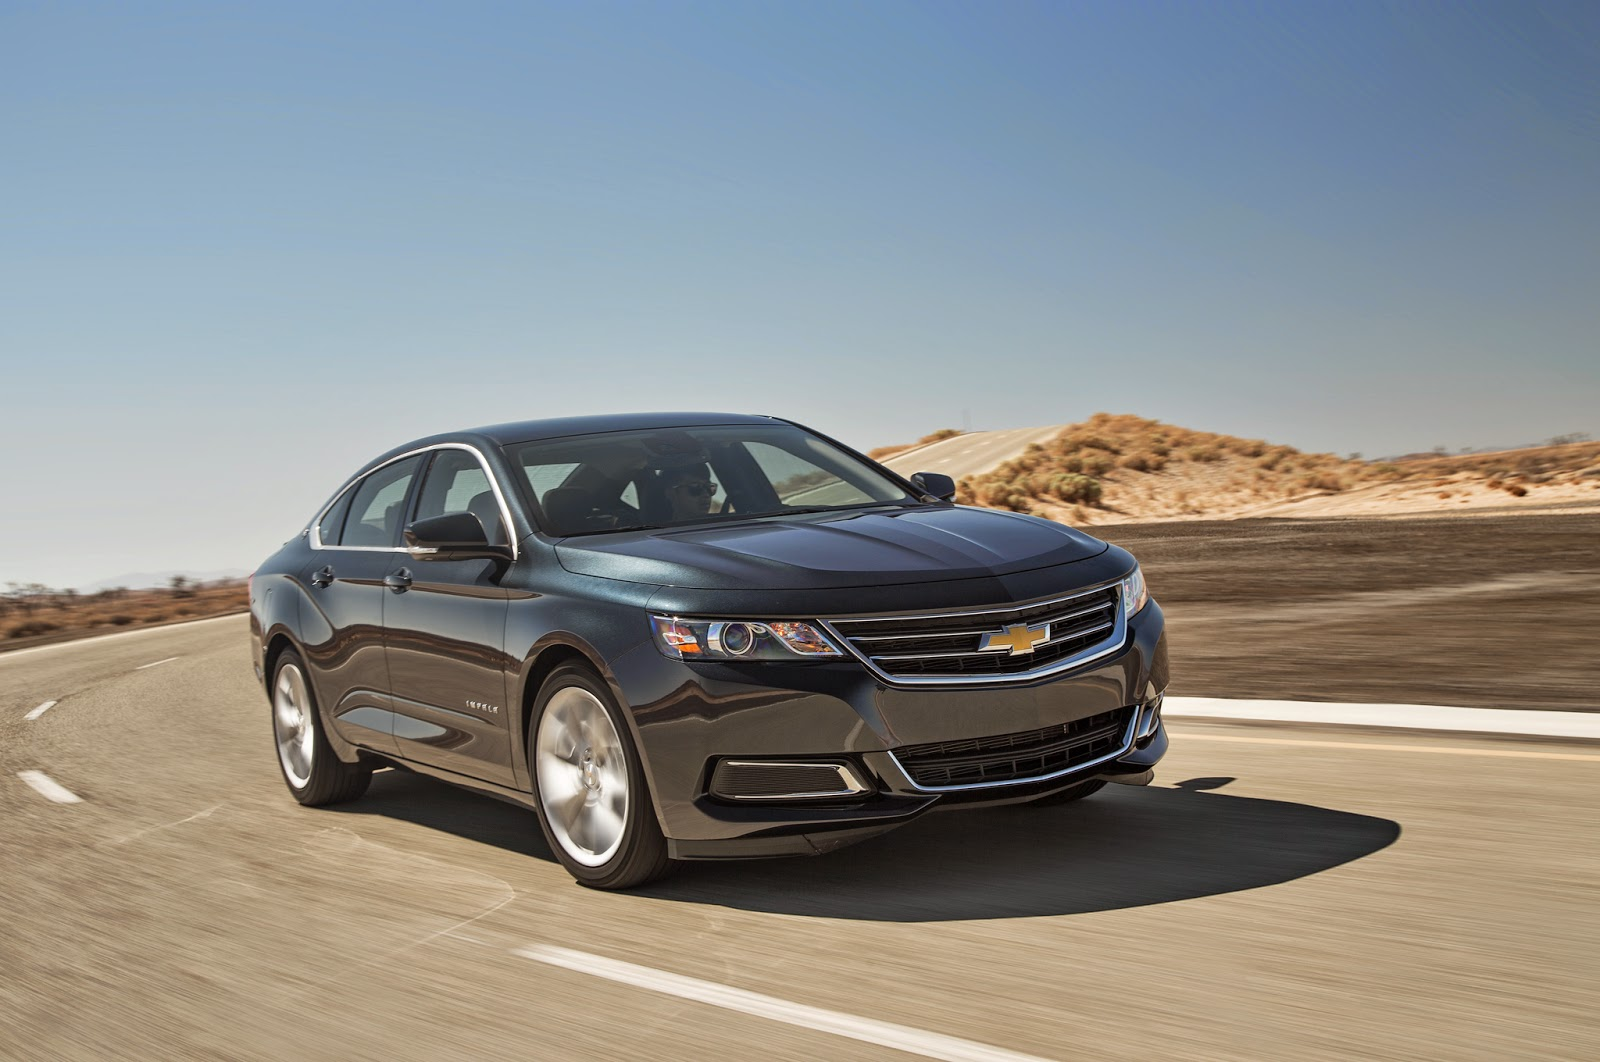 2014 chevrolet impala on the road